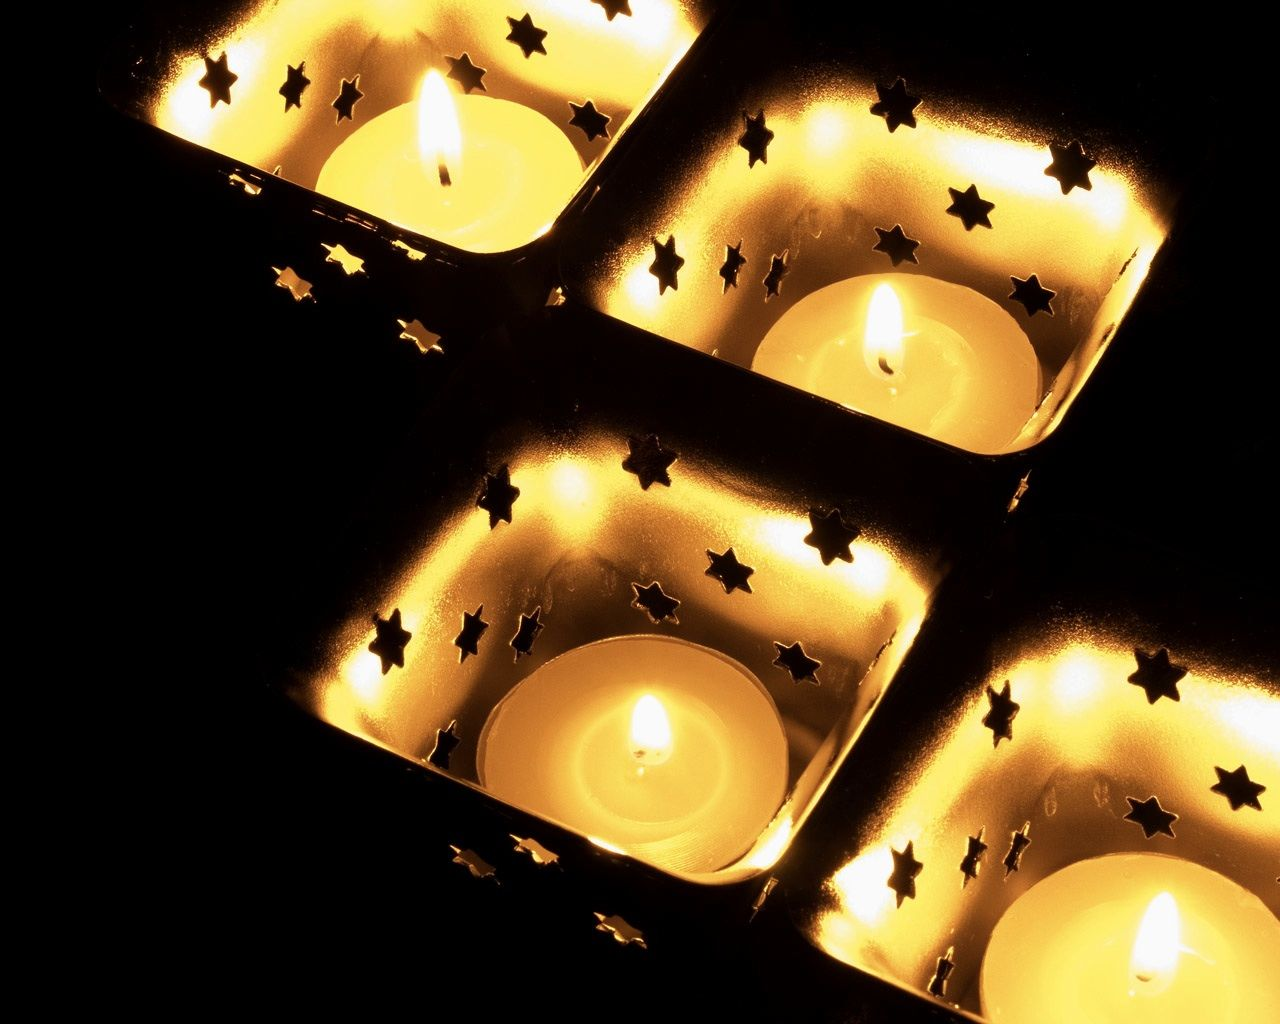 Pin by francesca dinh on candles pinterest